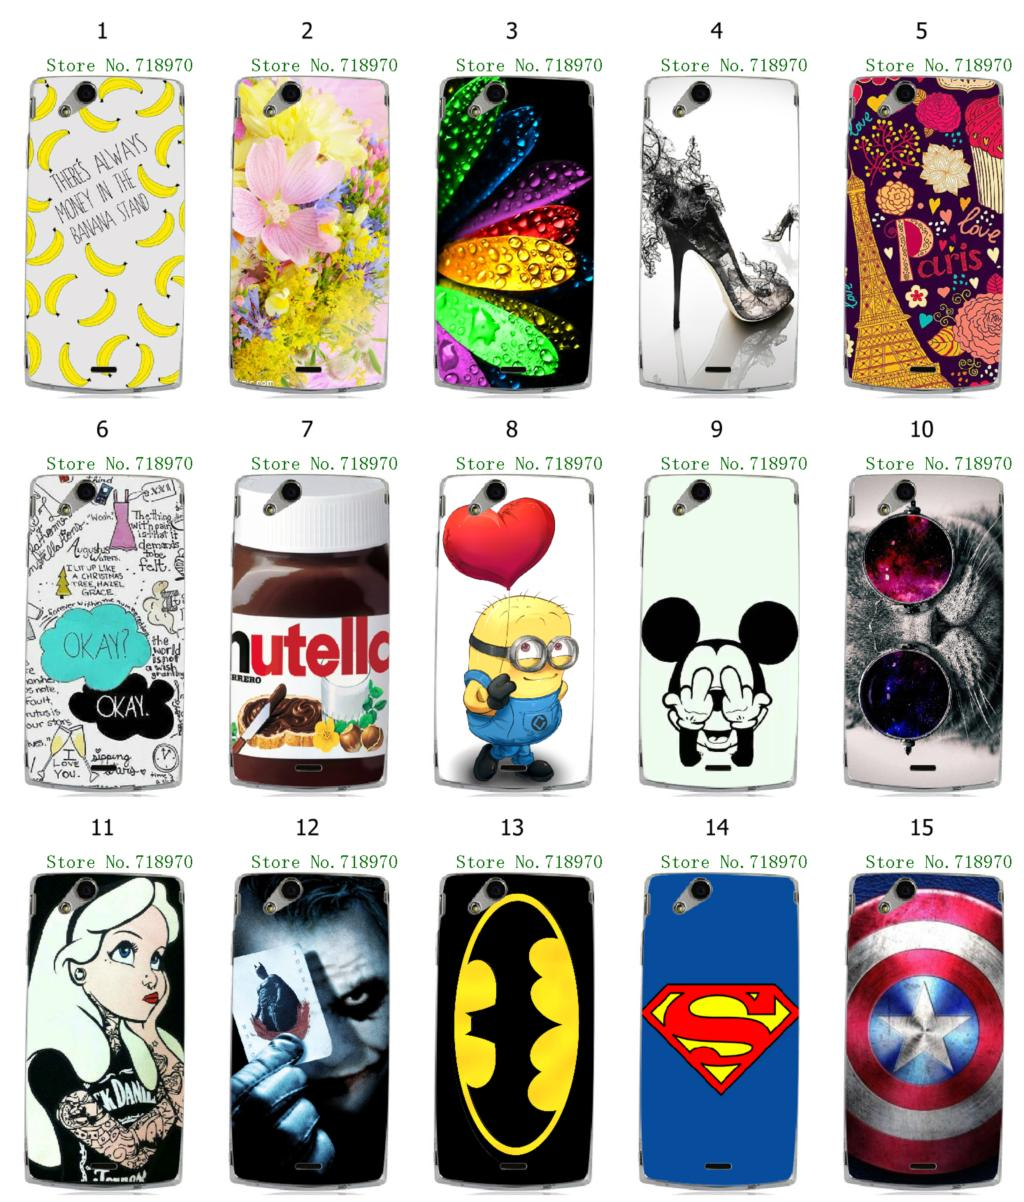 retail batman Captain America 15designs hybrid white hard cover cases for Sony Ericsson X12 LT15i Xperia Arc S LT18i free shipp(China (Mainland))